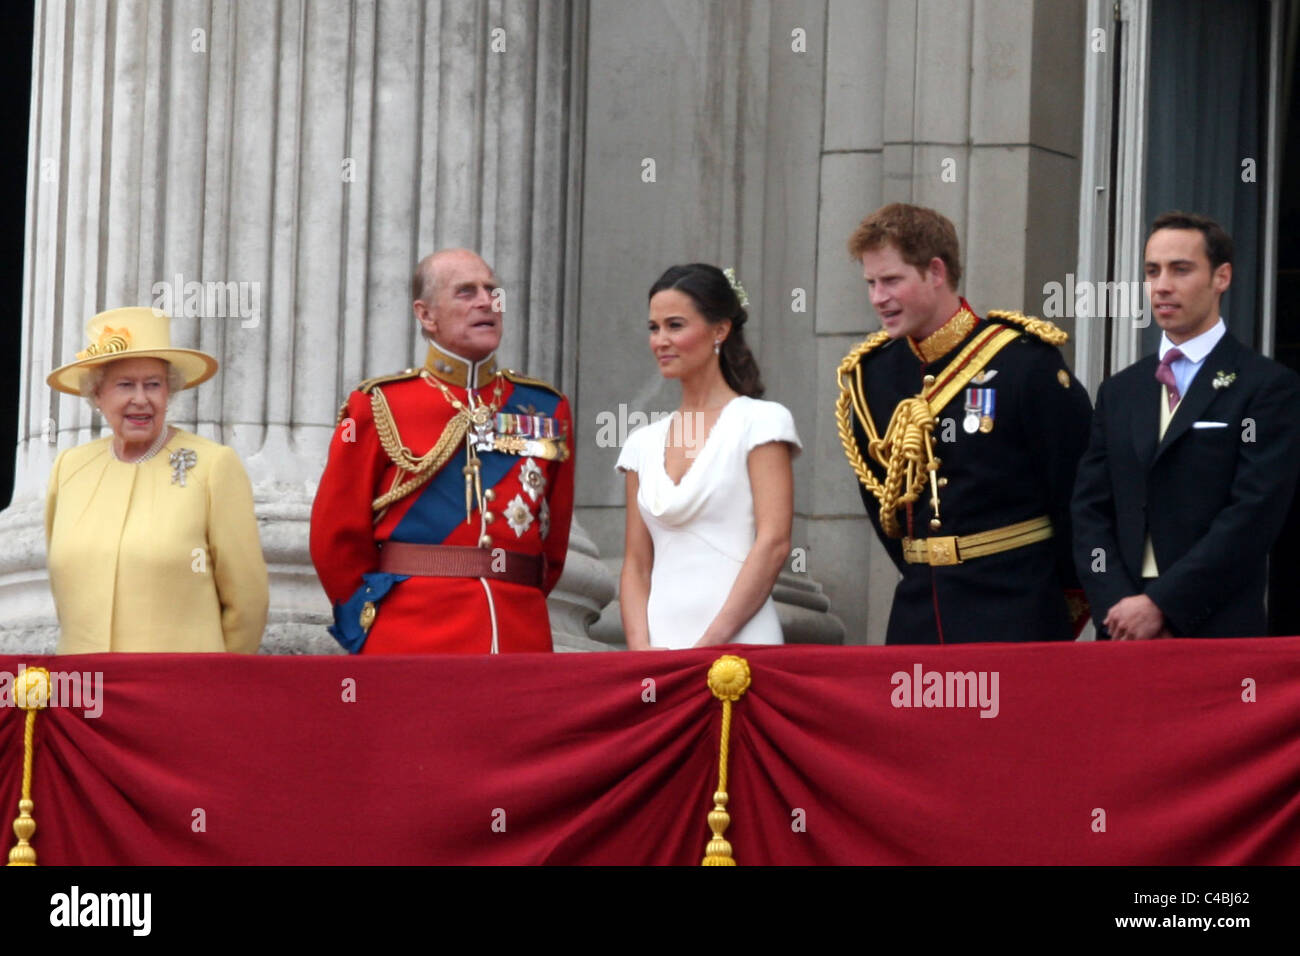 Pippa Middleton And Prince Harry At The Royal Wedding Of Prince